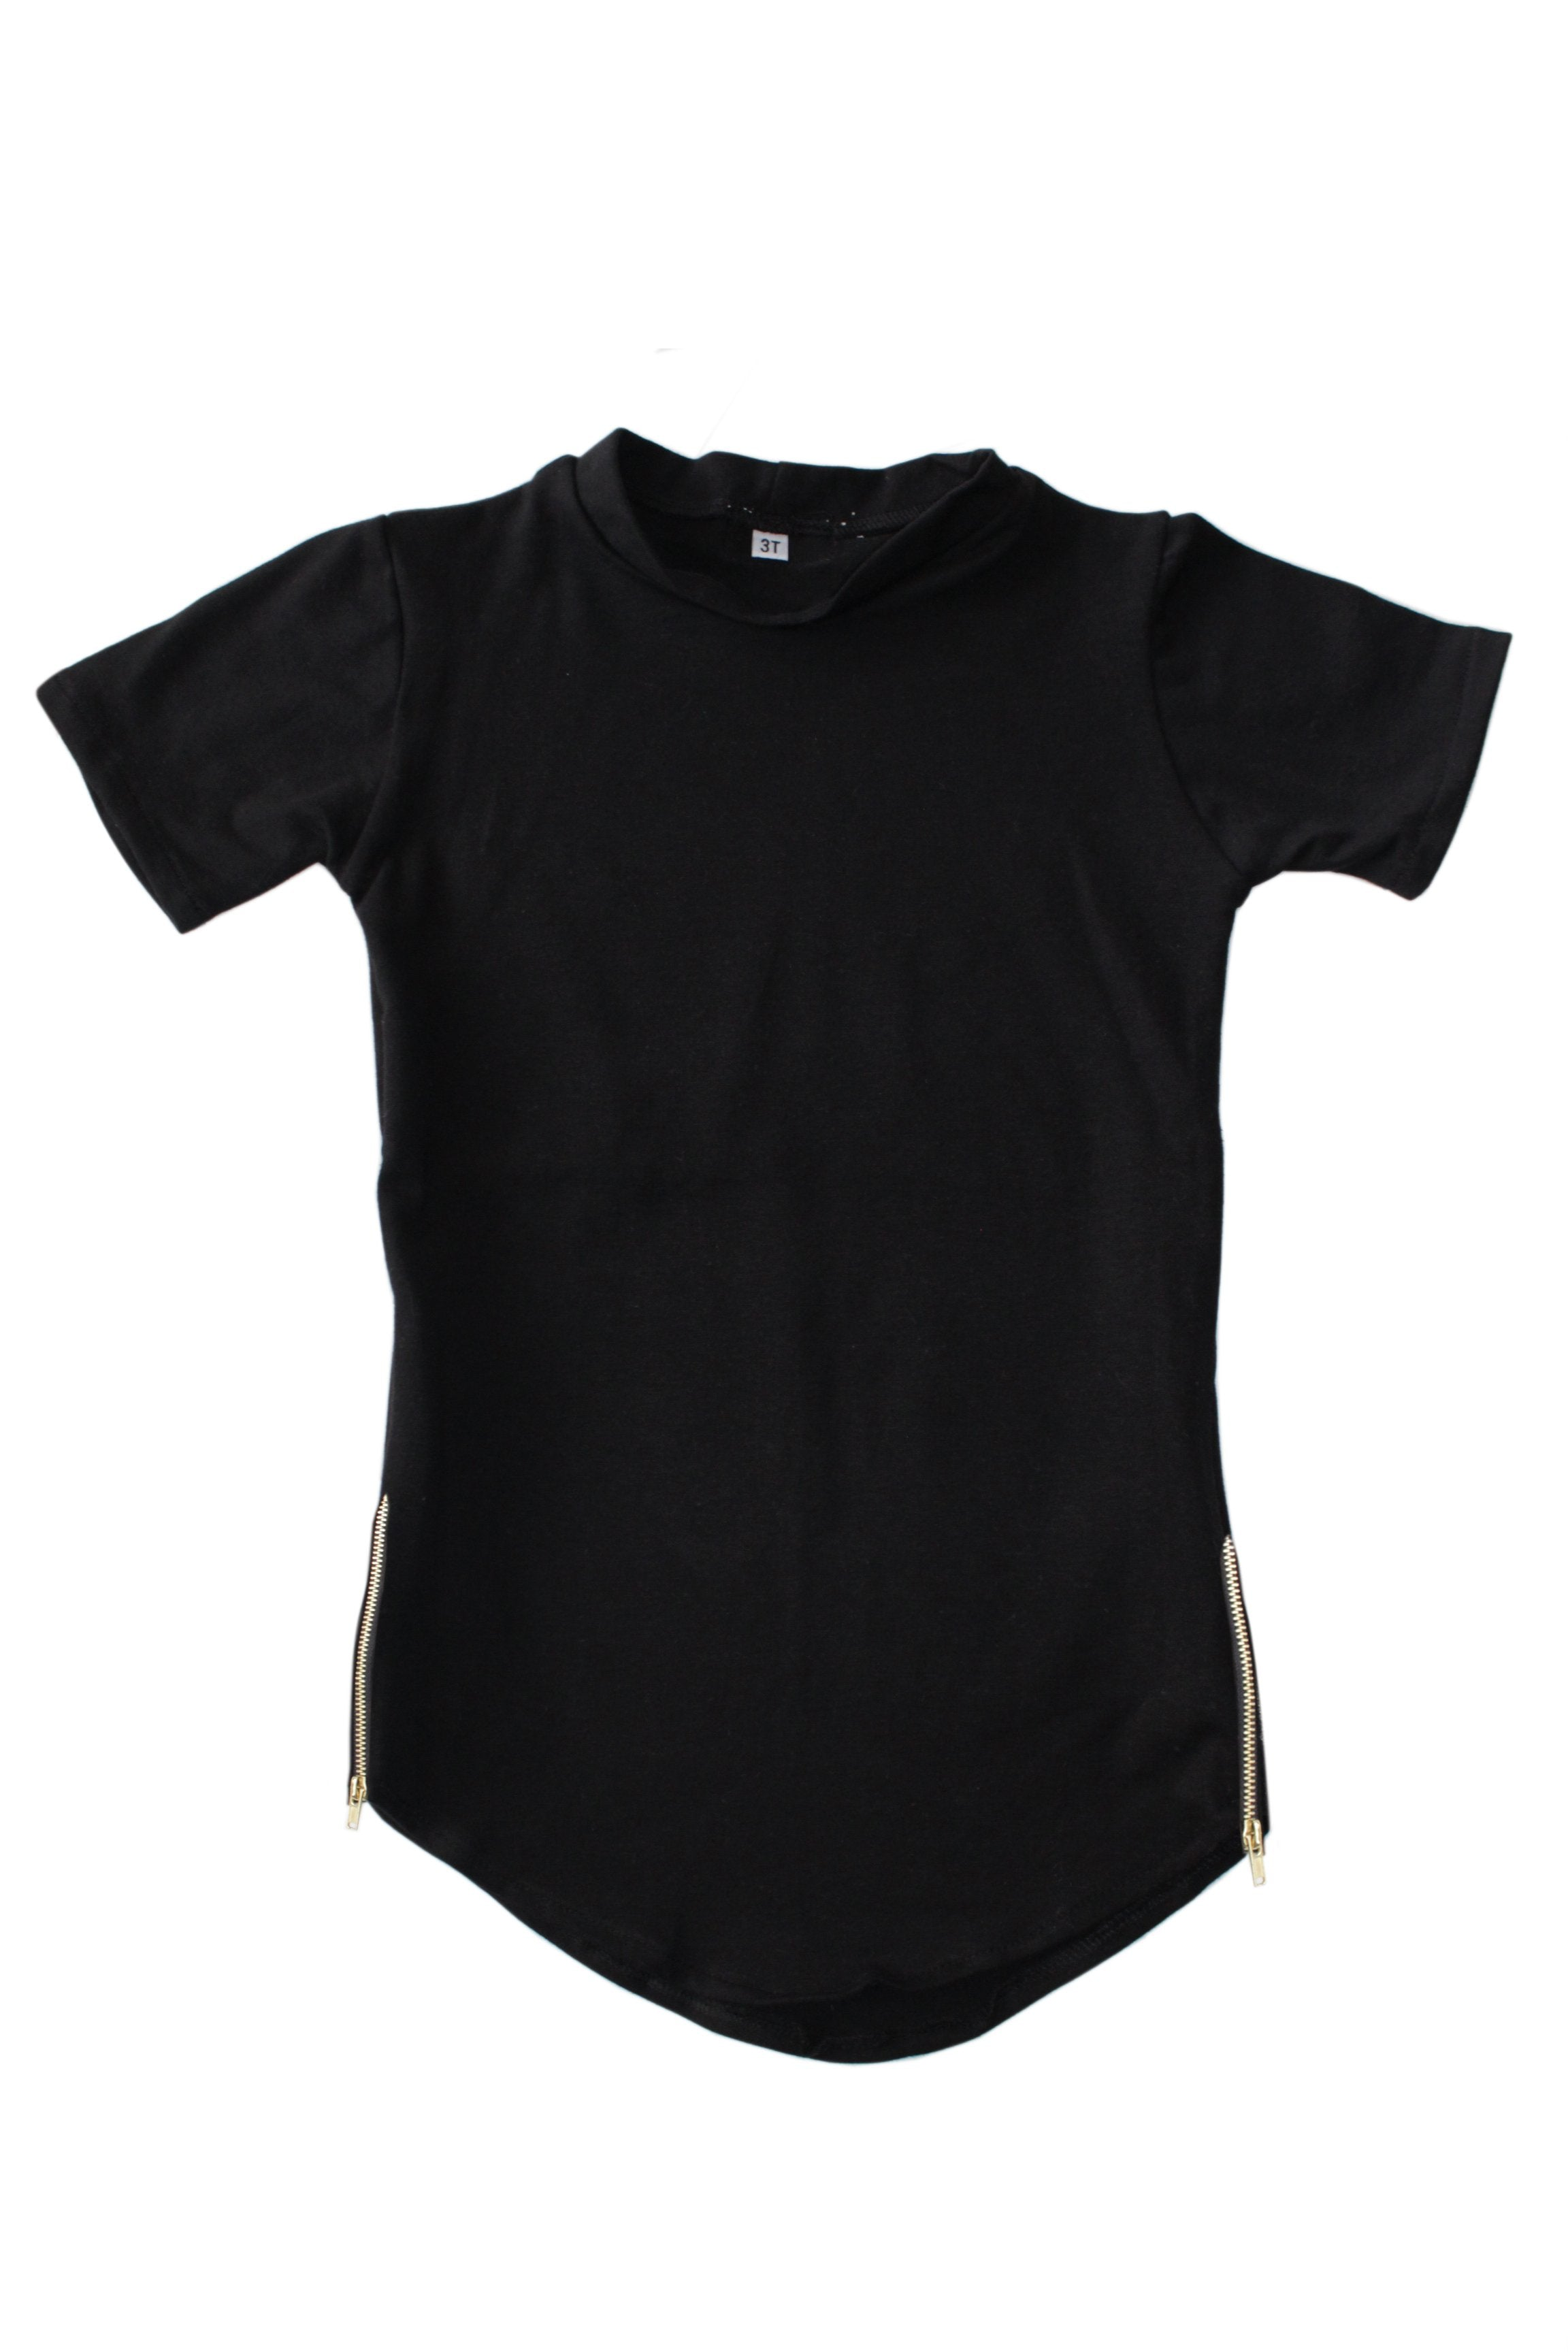 Zipper Tail Tee - Black